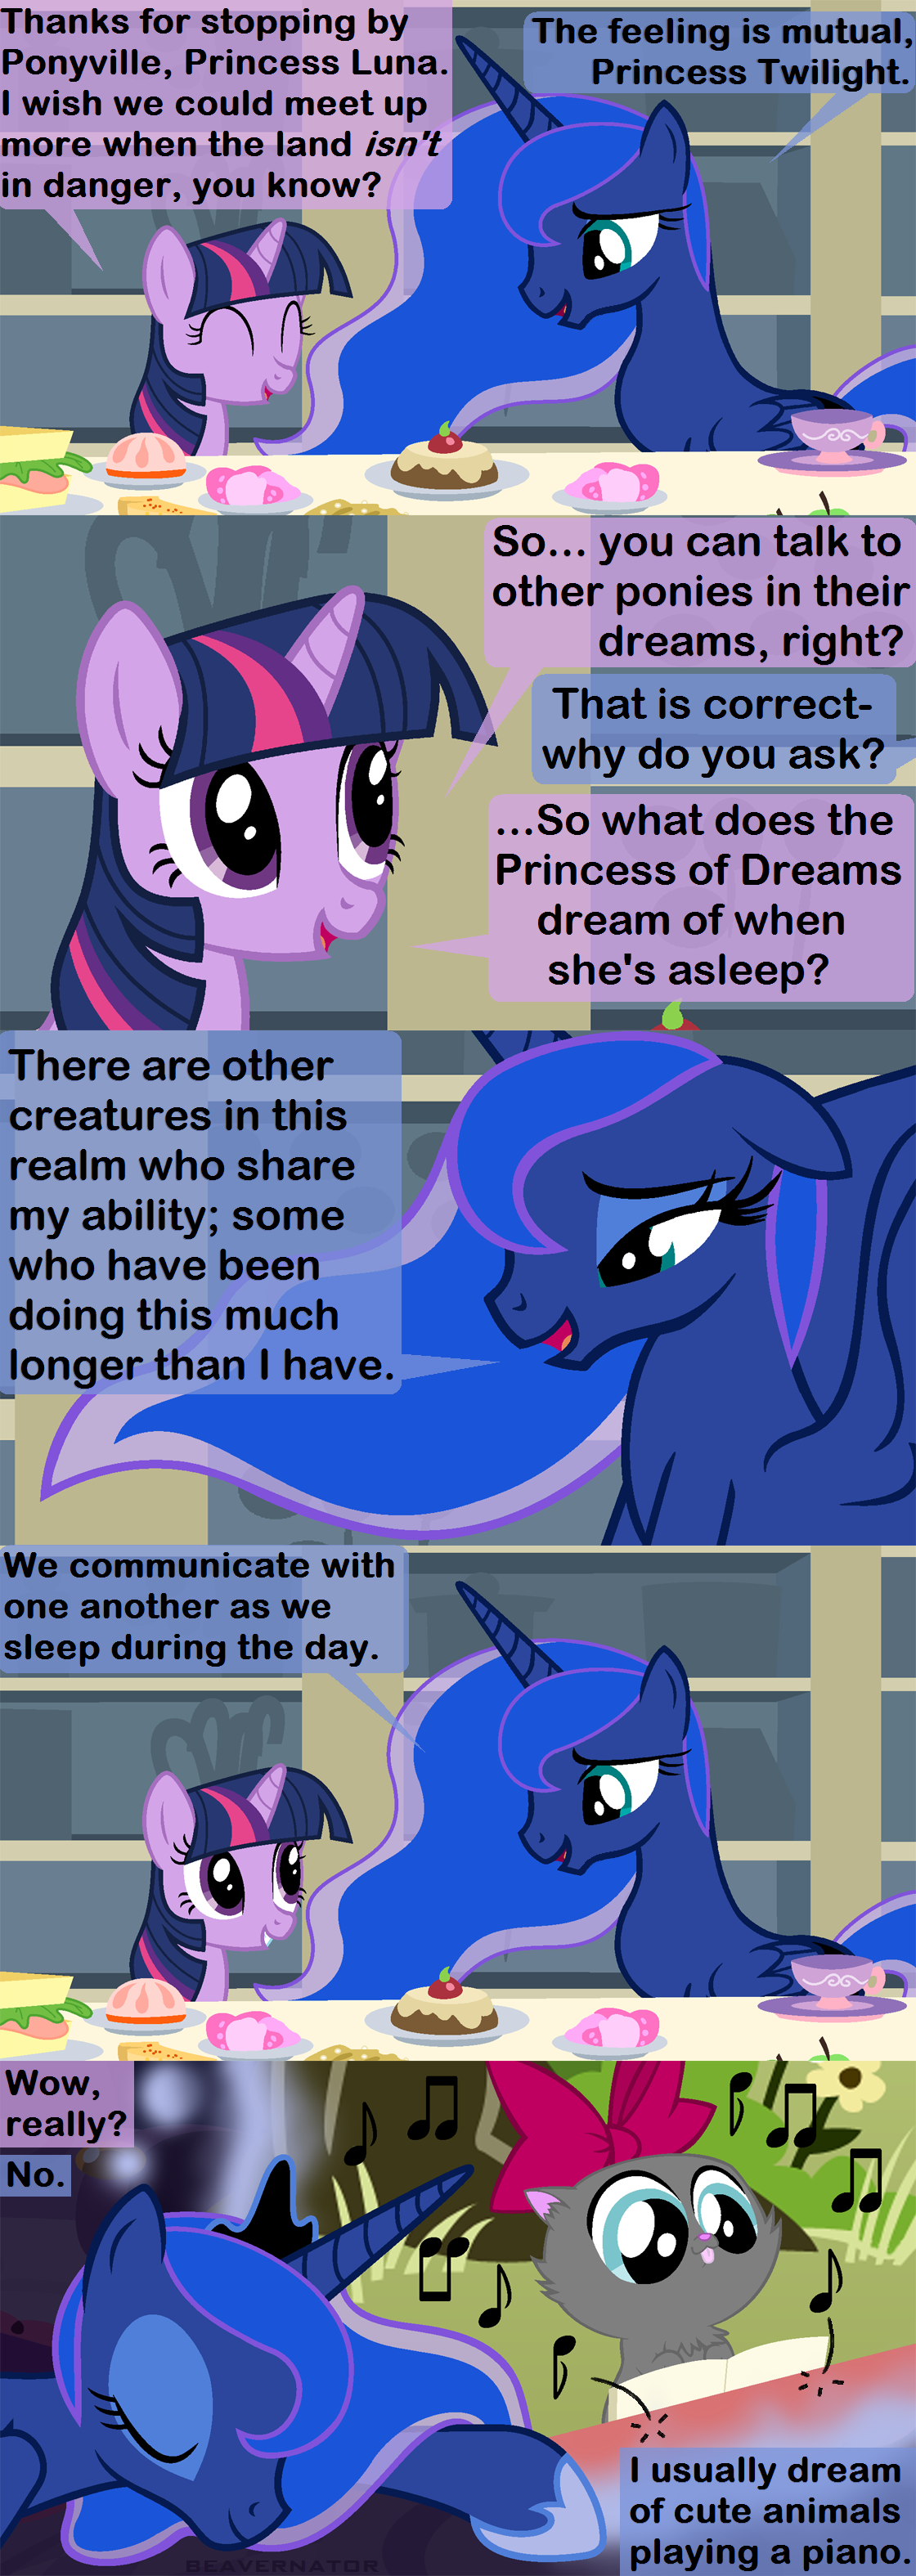 Princess of Dreams by Beavernator